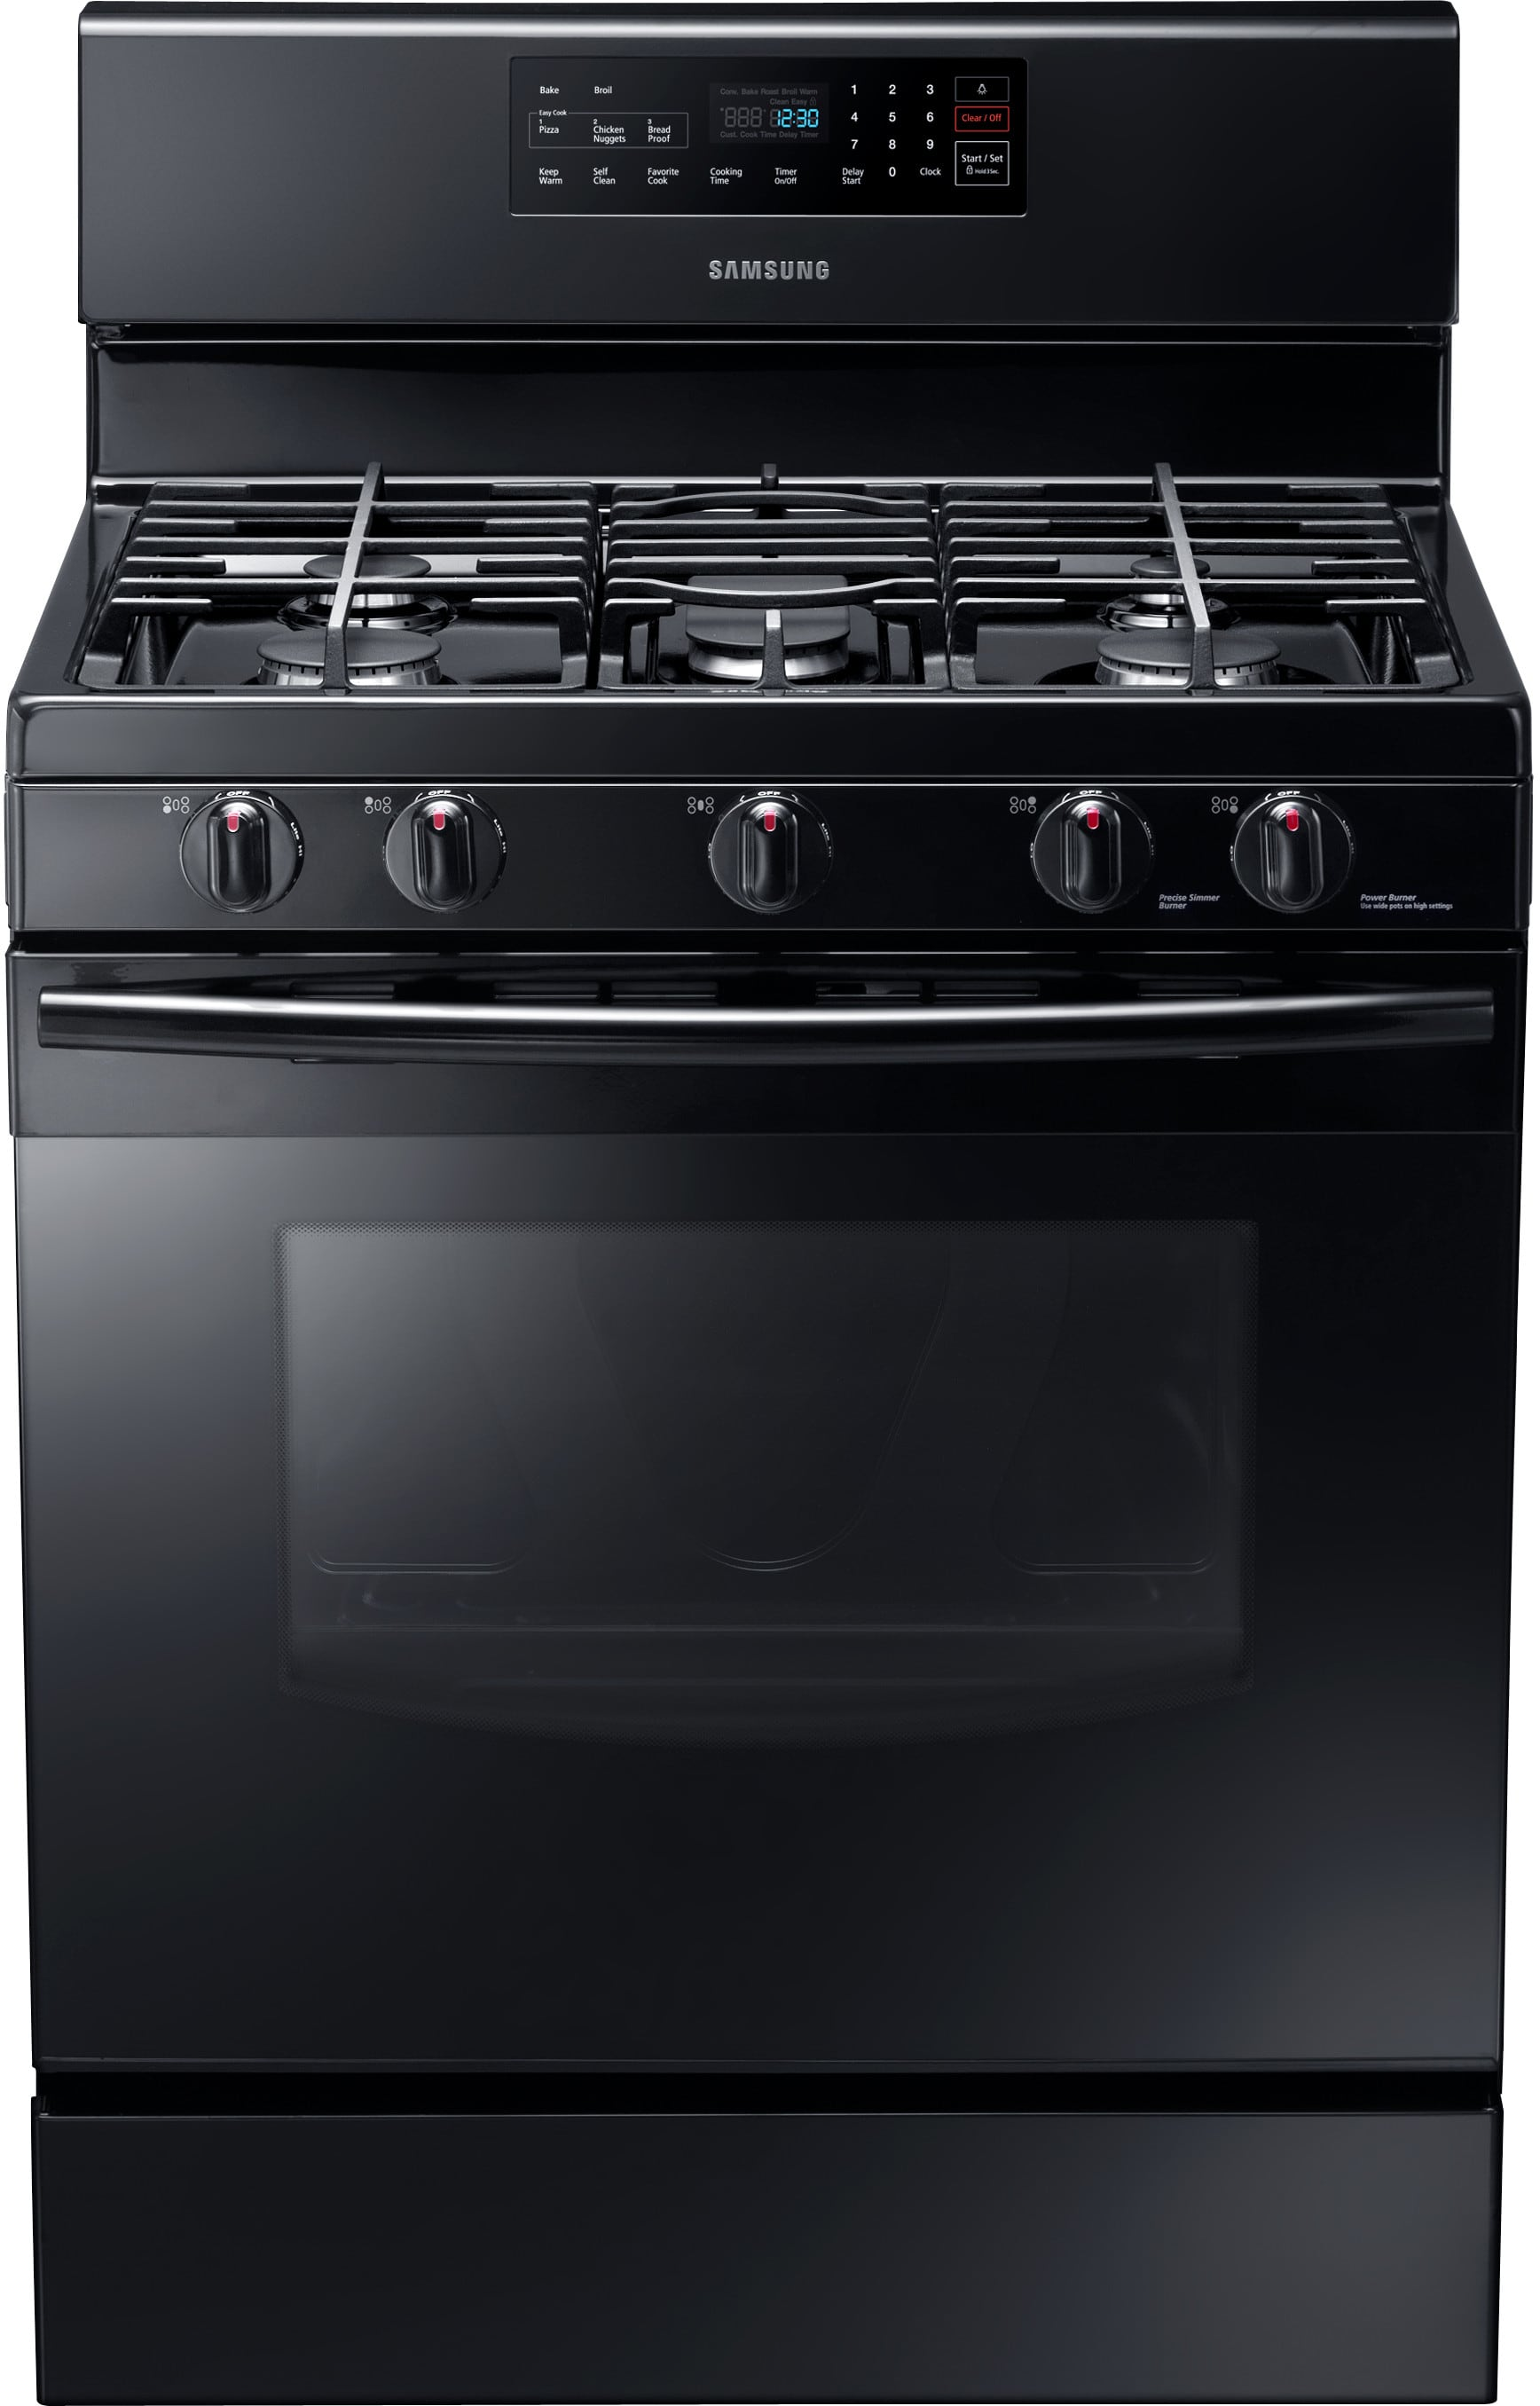 Samsung Nx58f5500sb 30 Inch Freestanding Gas Range With 5